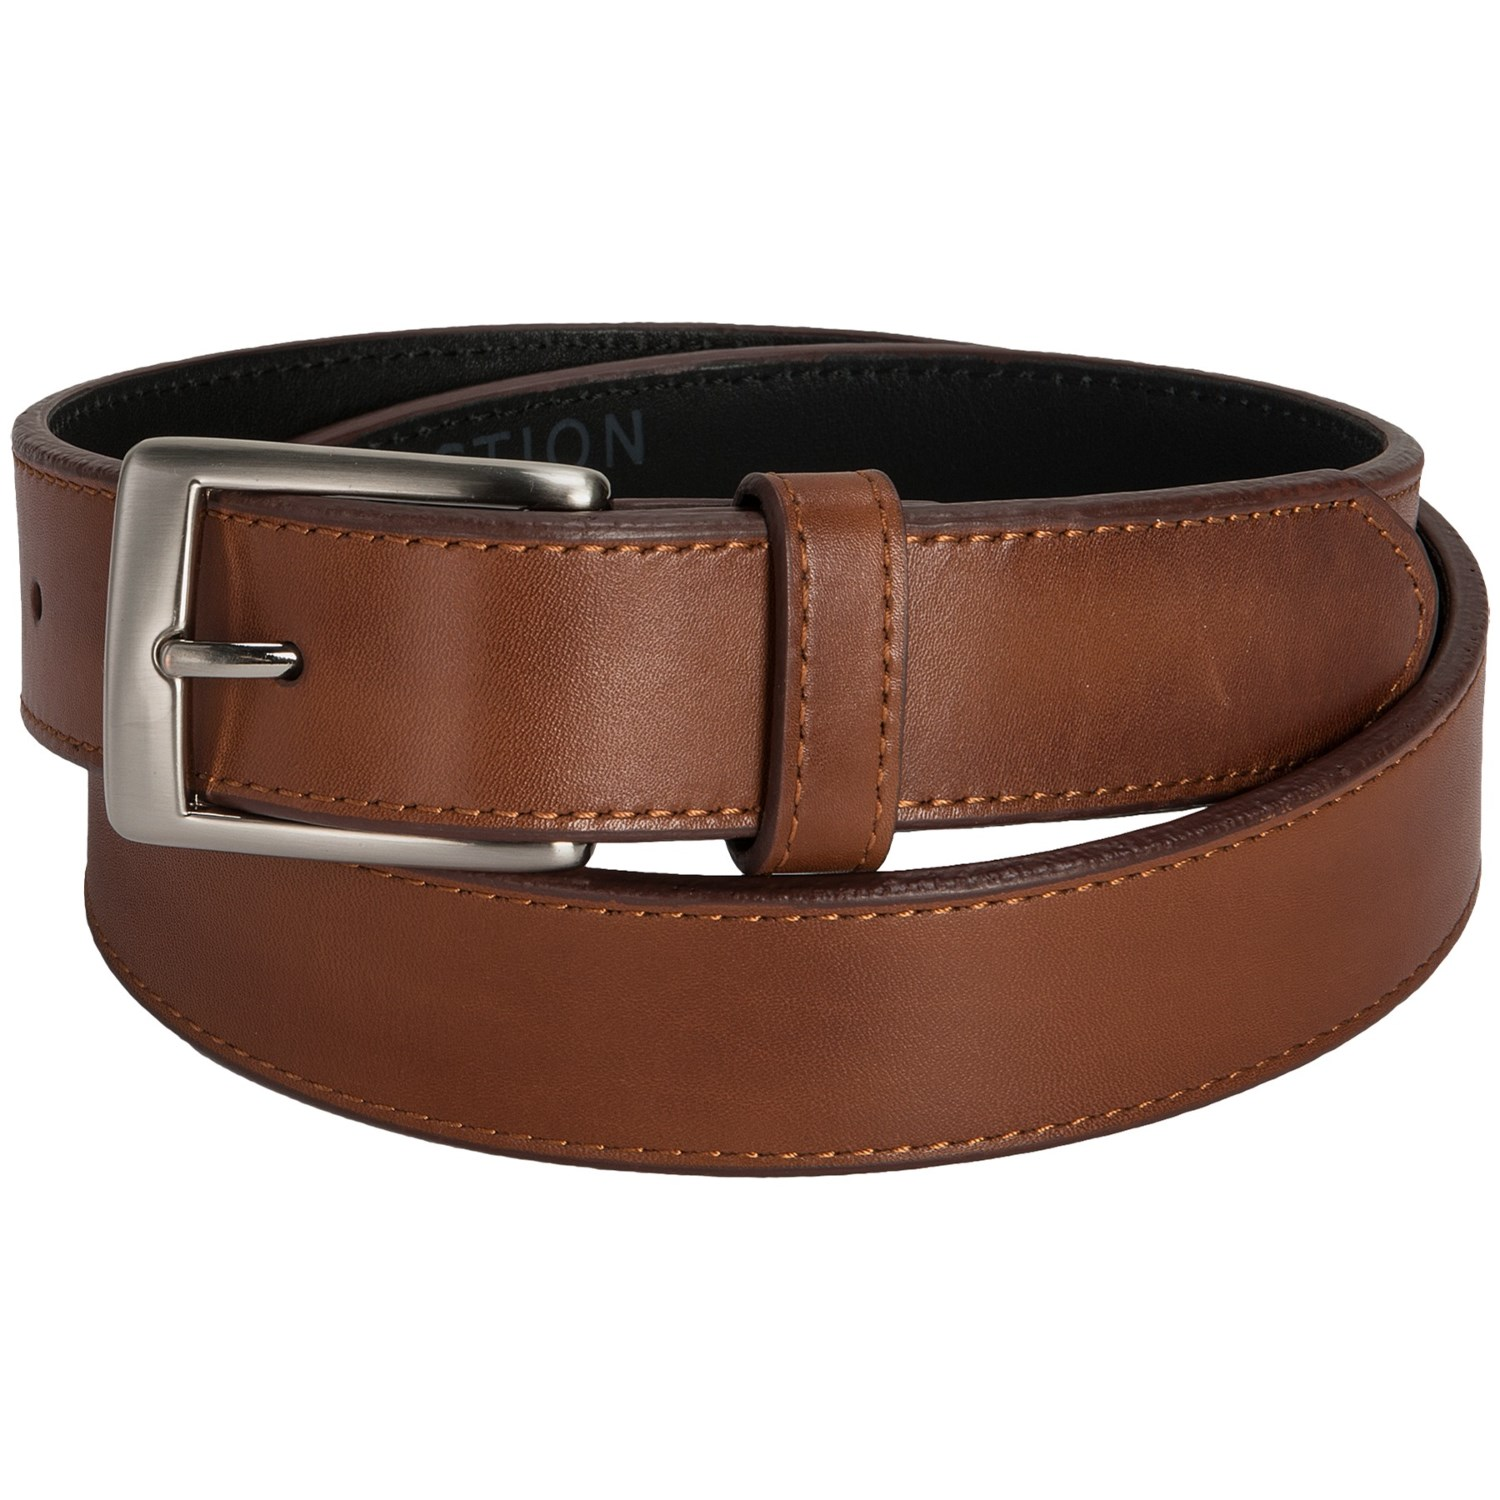 Men's Belts: Free Shipping on orders over $45 at s2w6s5q3to.gq - Your Online Belts Store! Get 5% in rewards with Club O!